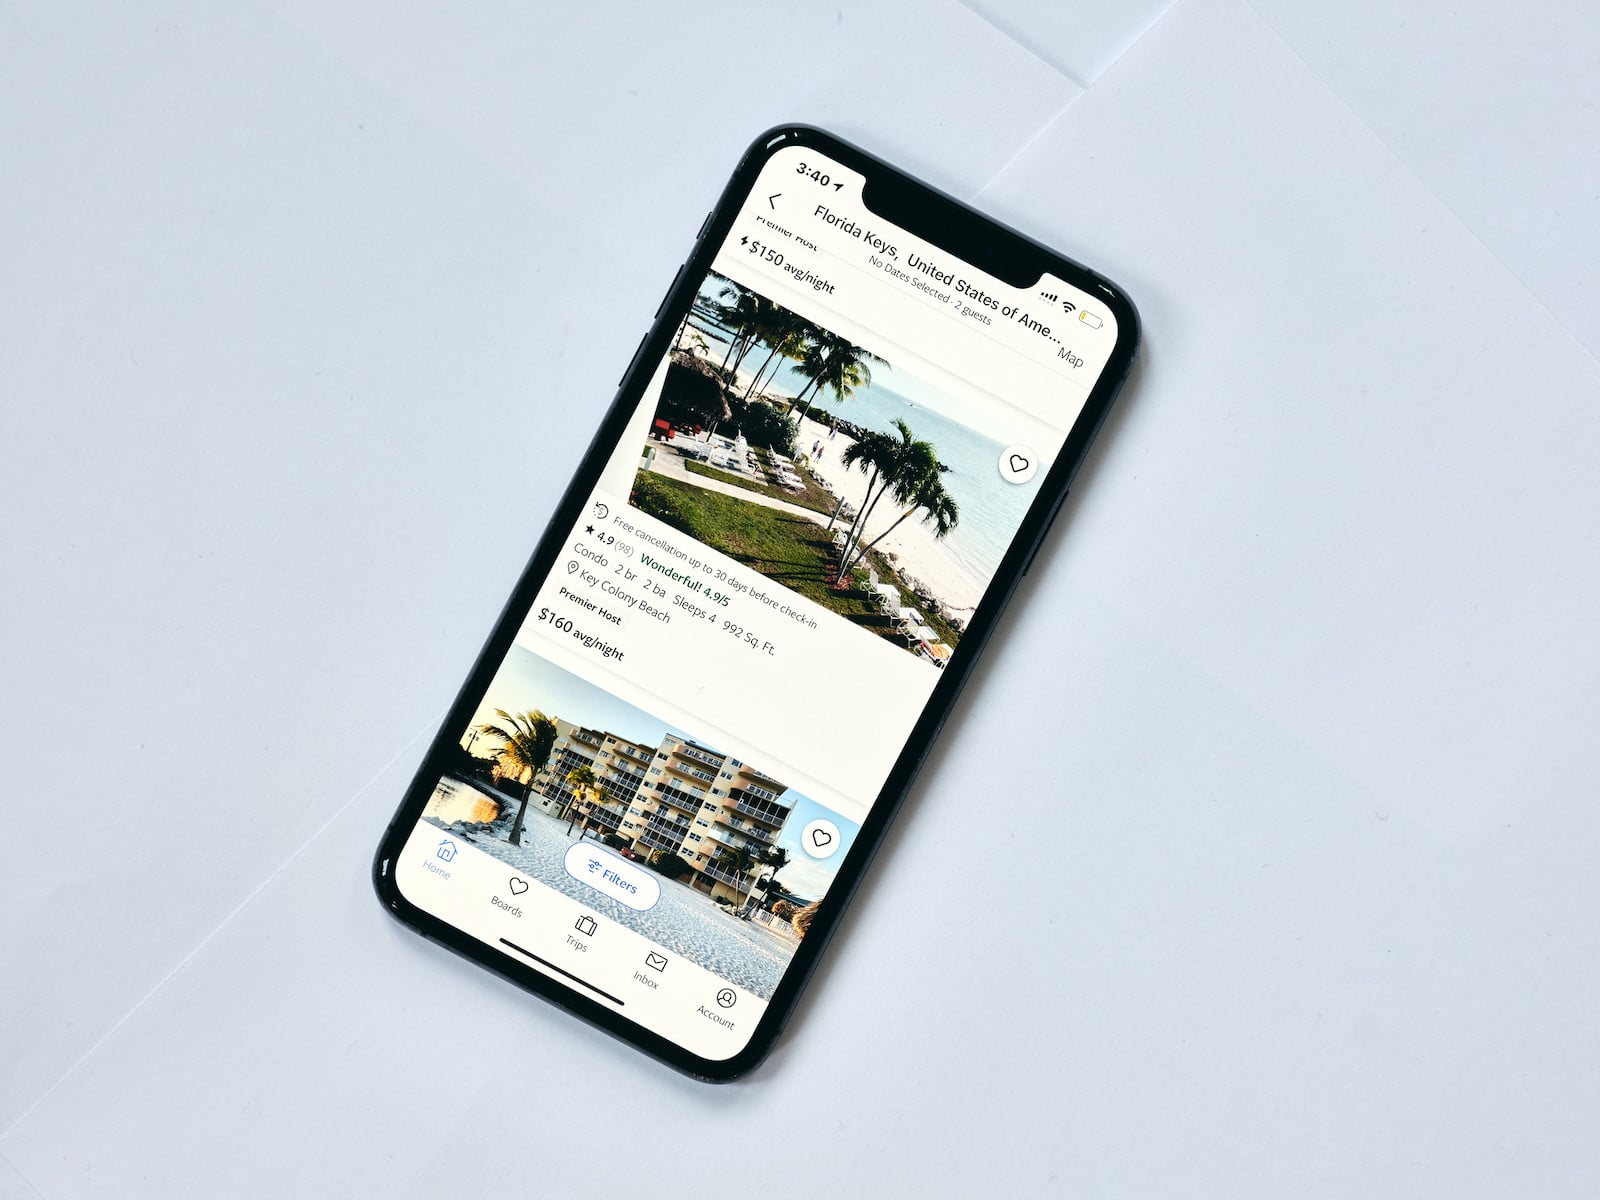 Image of Airbnb's app on a phone